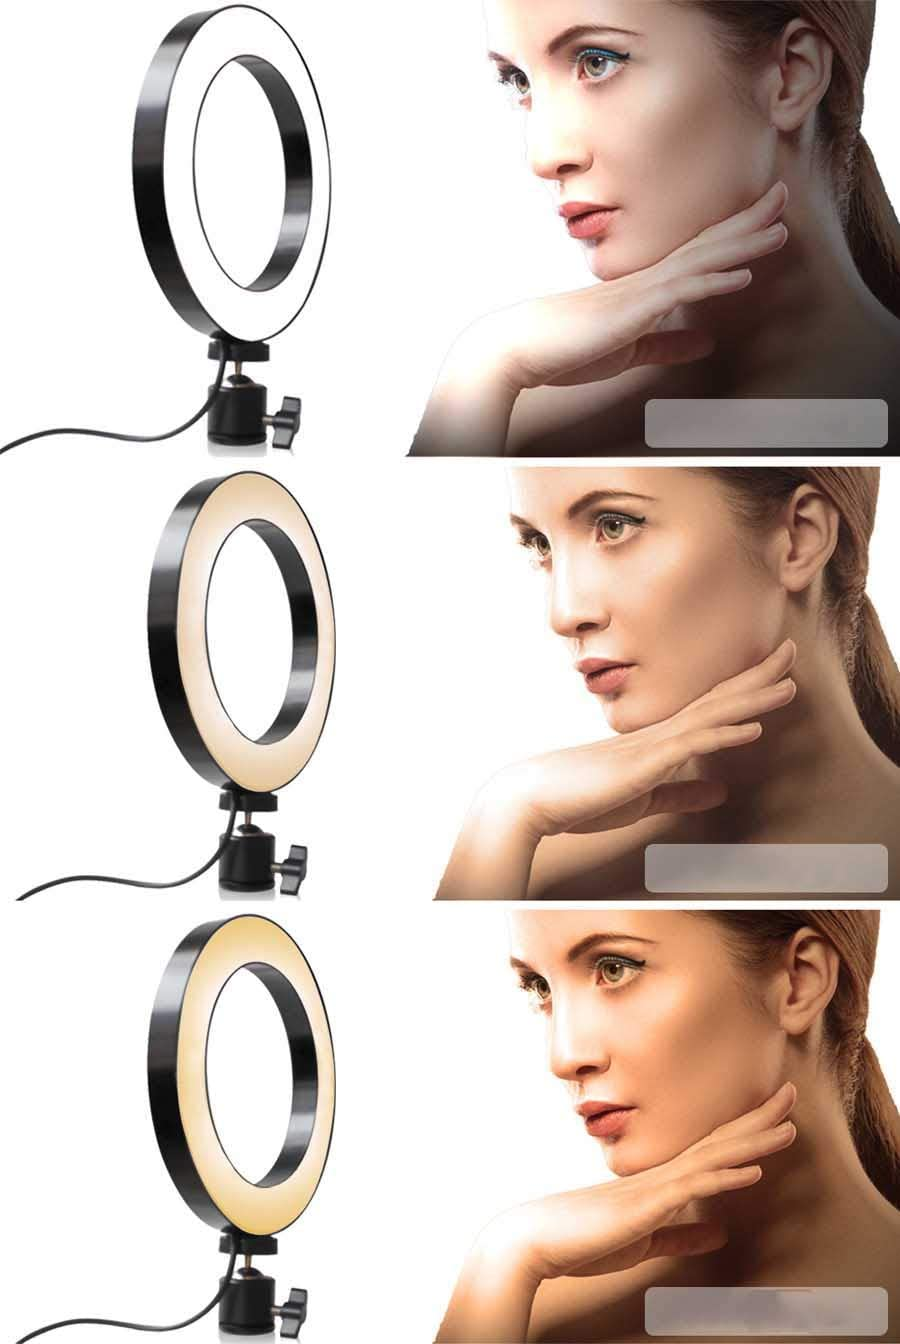 XYSQWZ LED Ring Light Dimmable 10-inch Ring Makeup Light with Tripod Stand Selfie Vlog Live Streaming YouTube Phone Video Shooting